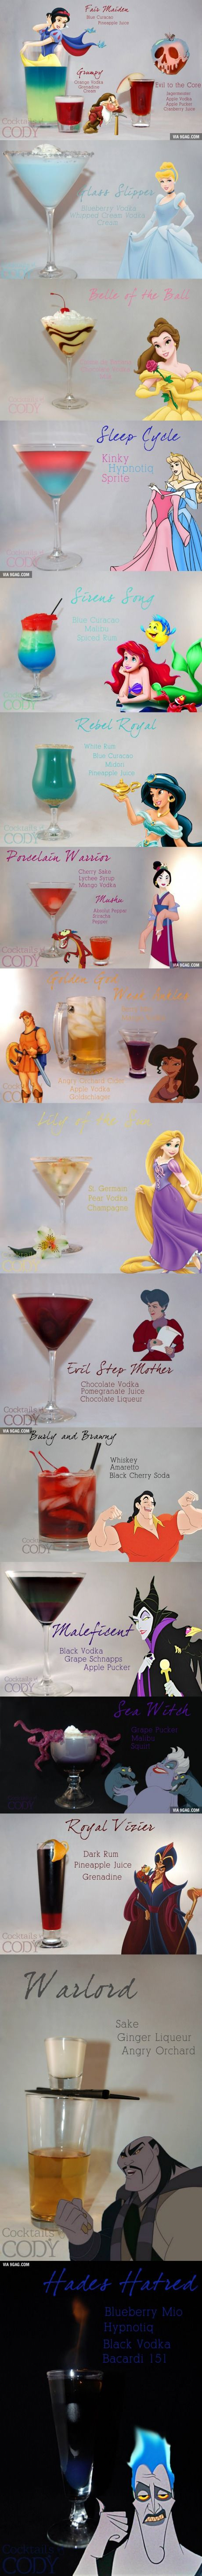 This would be great at a wedding! - 16 Disney Themed Cocktails You Will Want To Try